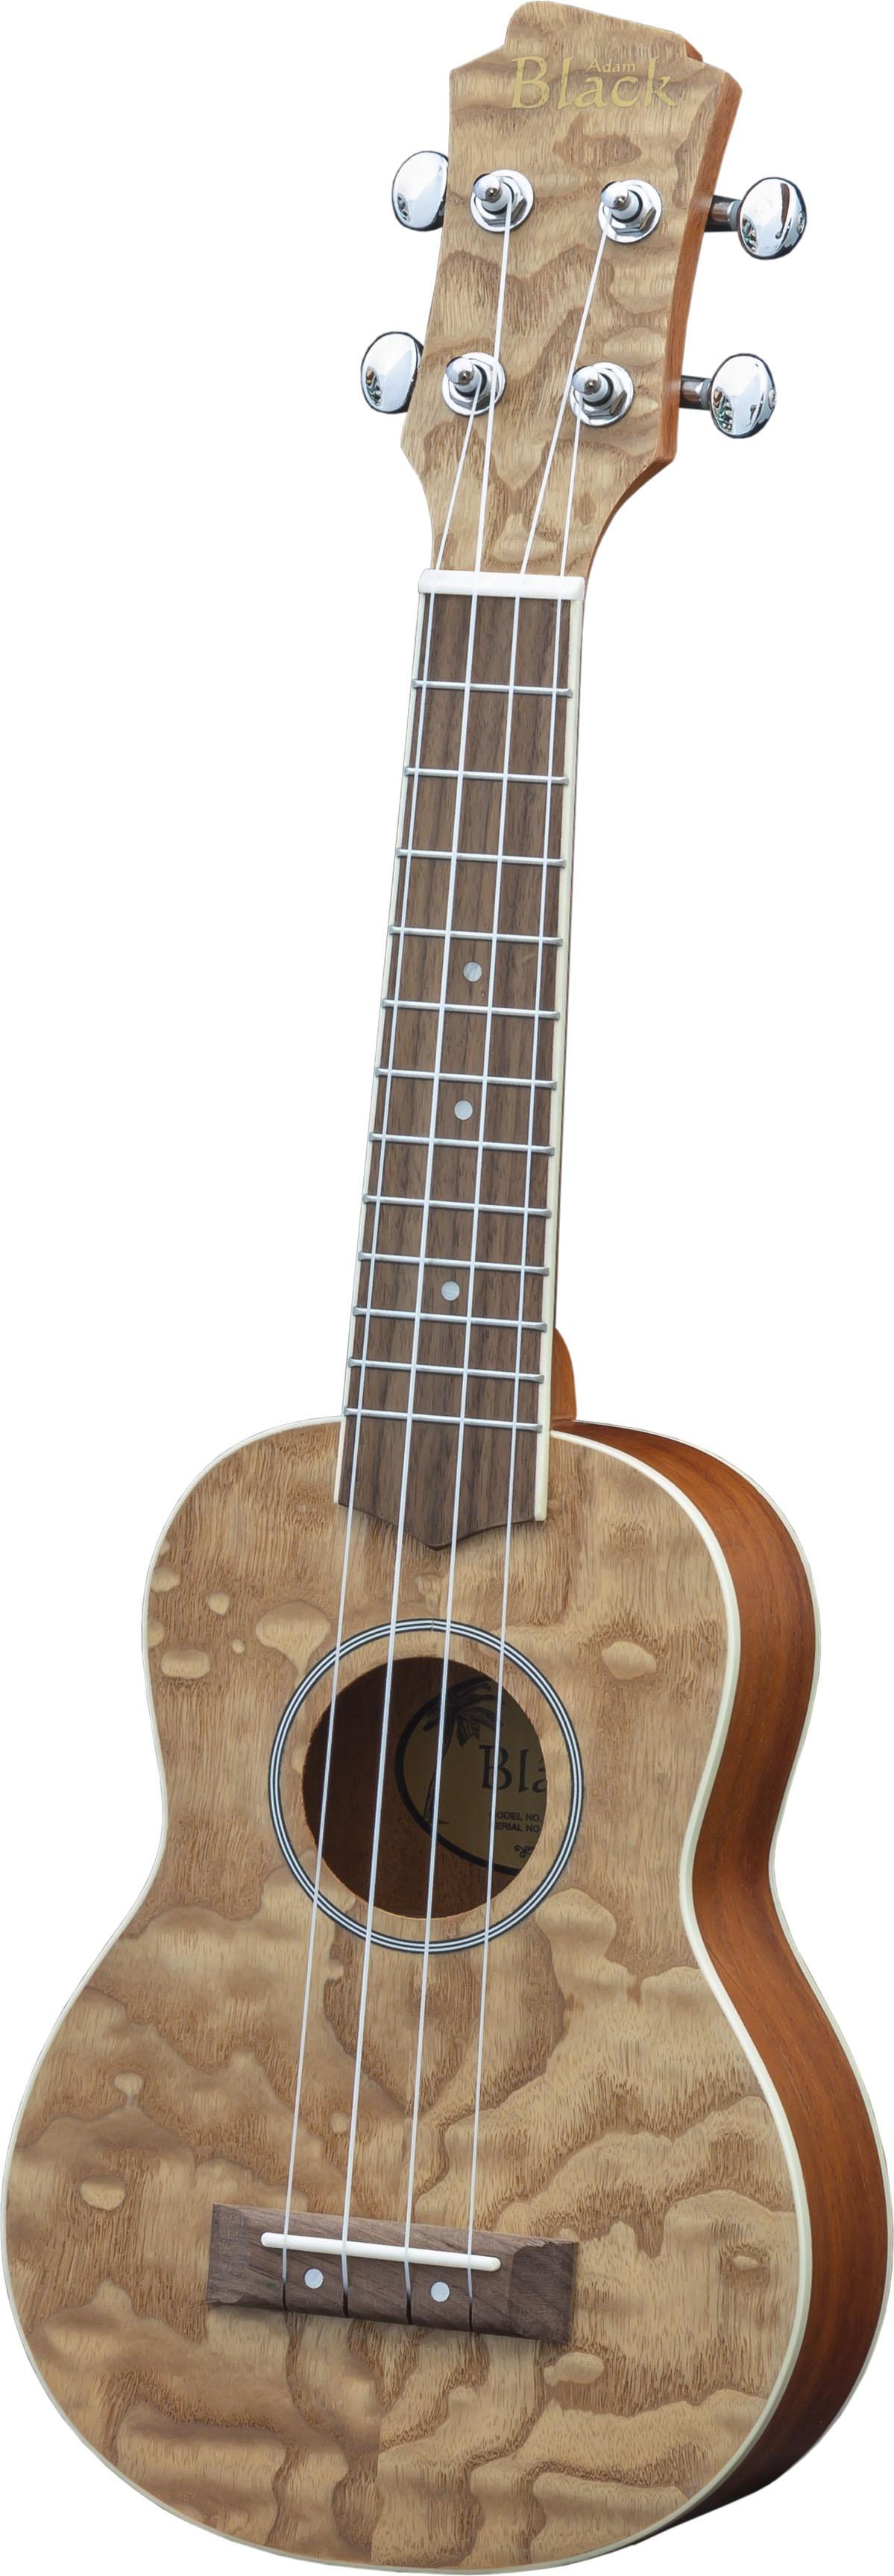 Adam Black Exotic Wood Series Soprano Ukulele - Quilted Ash